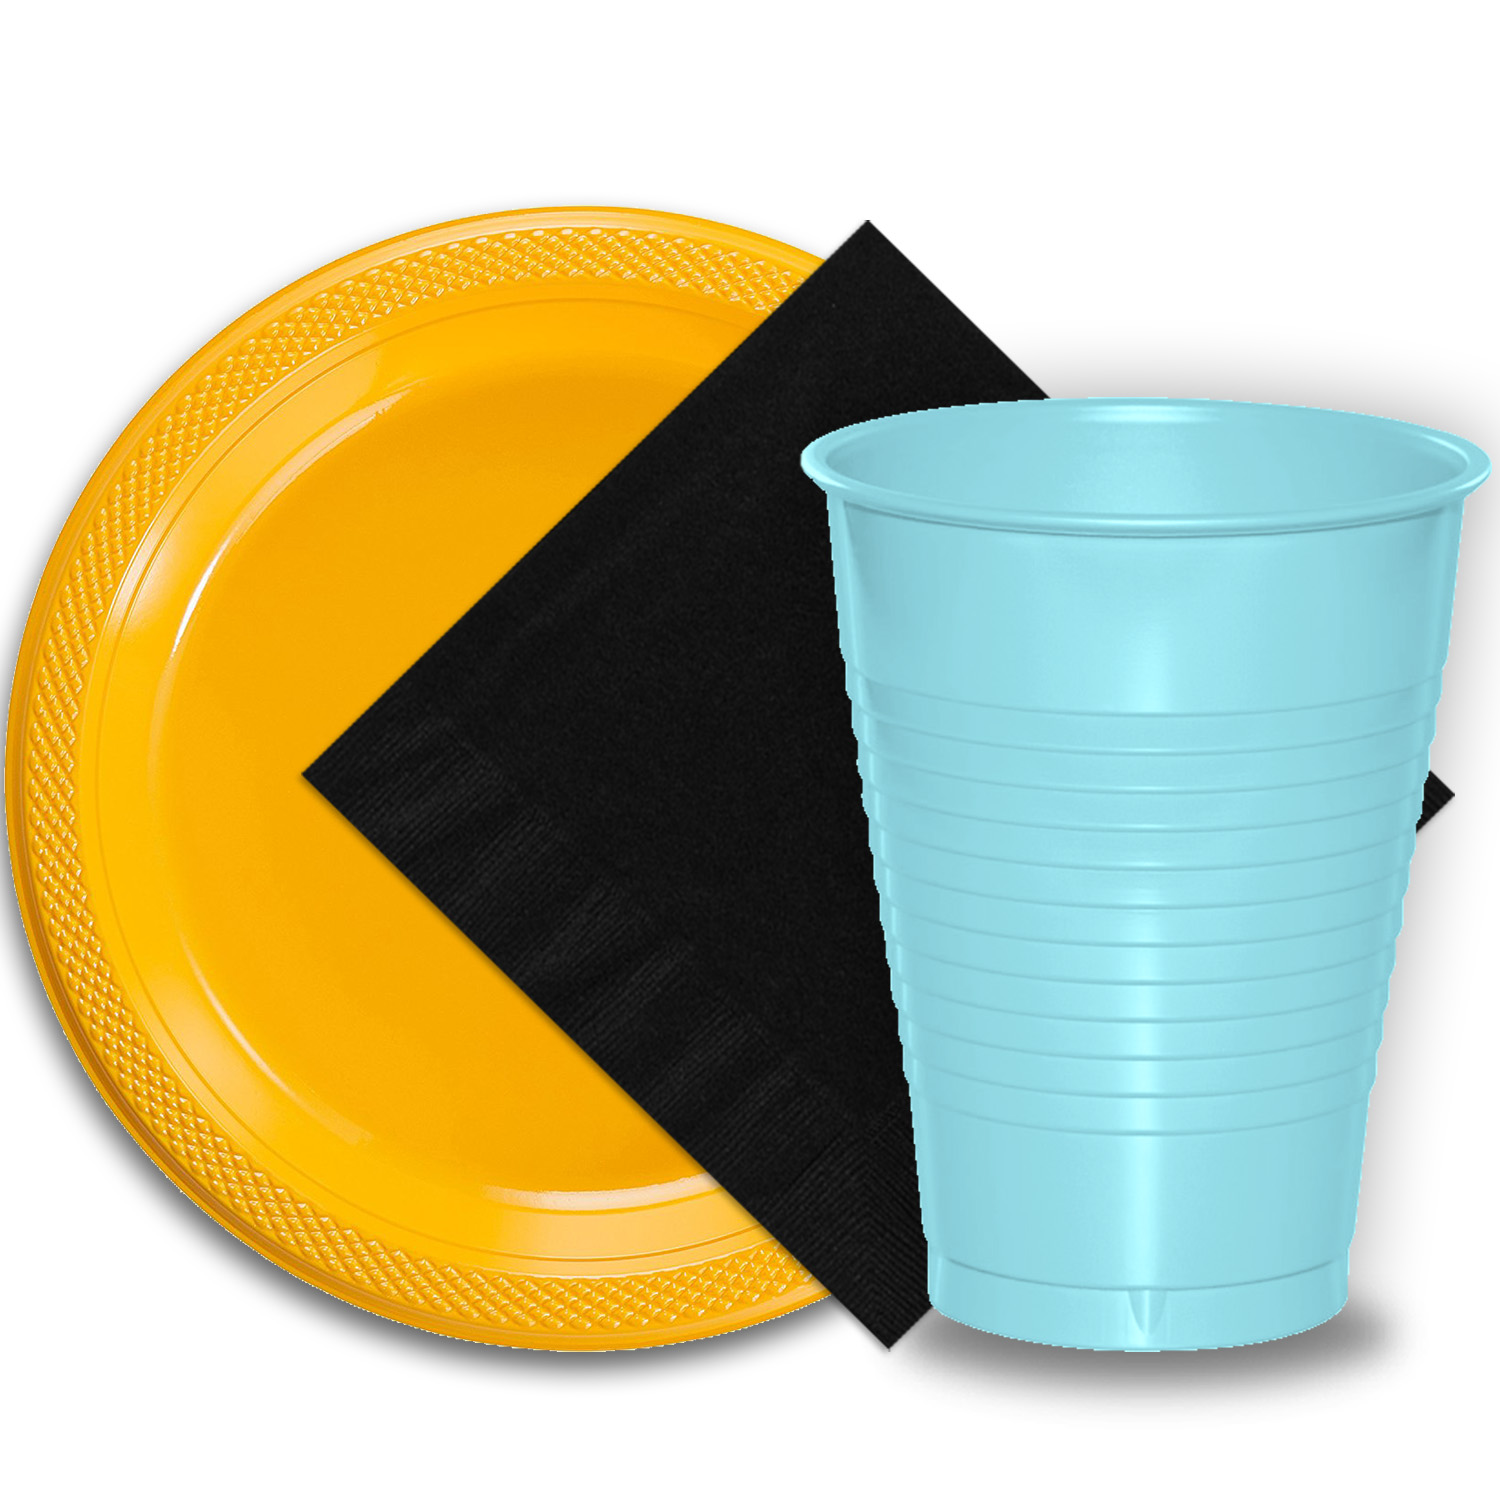 "50 Yellow Plastic Plates (9""), 50 Light Blue Plastic Cups (12 oz.), and 50 Black Paper Napkins, Dazzelling Colored Disposable Party Supplies Tableware Set for Fifty Guests."